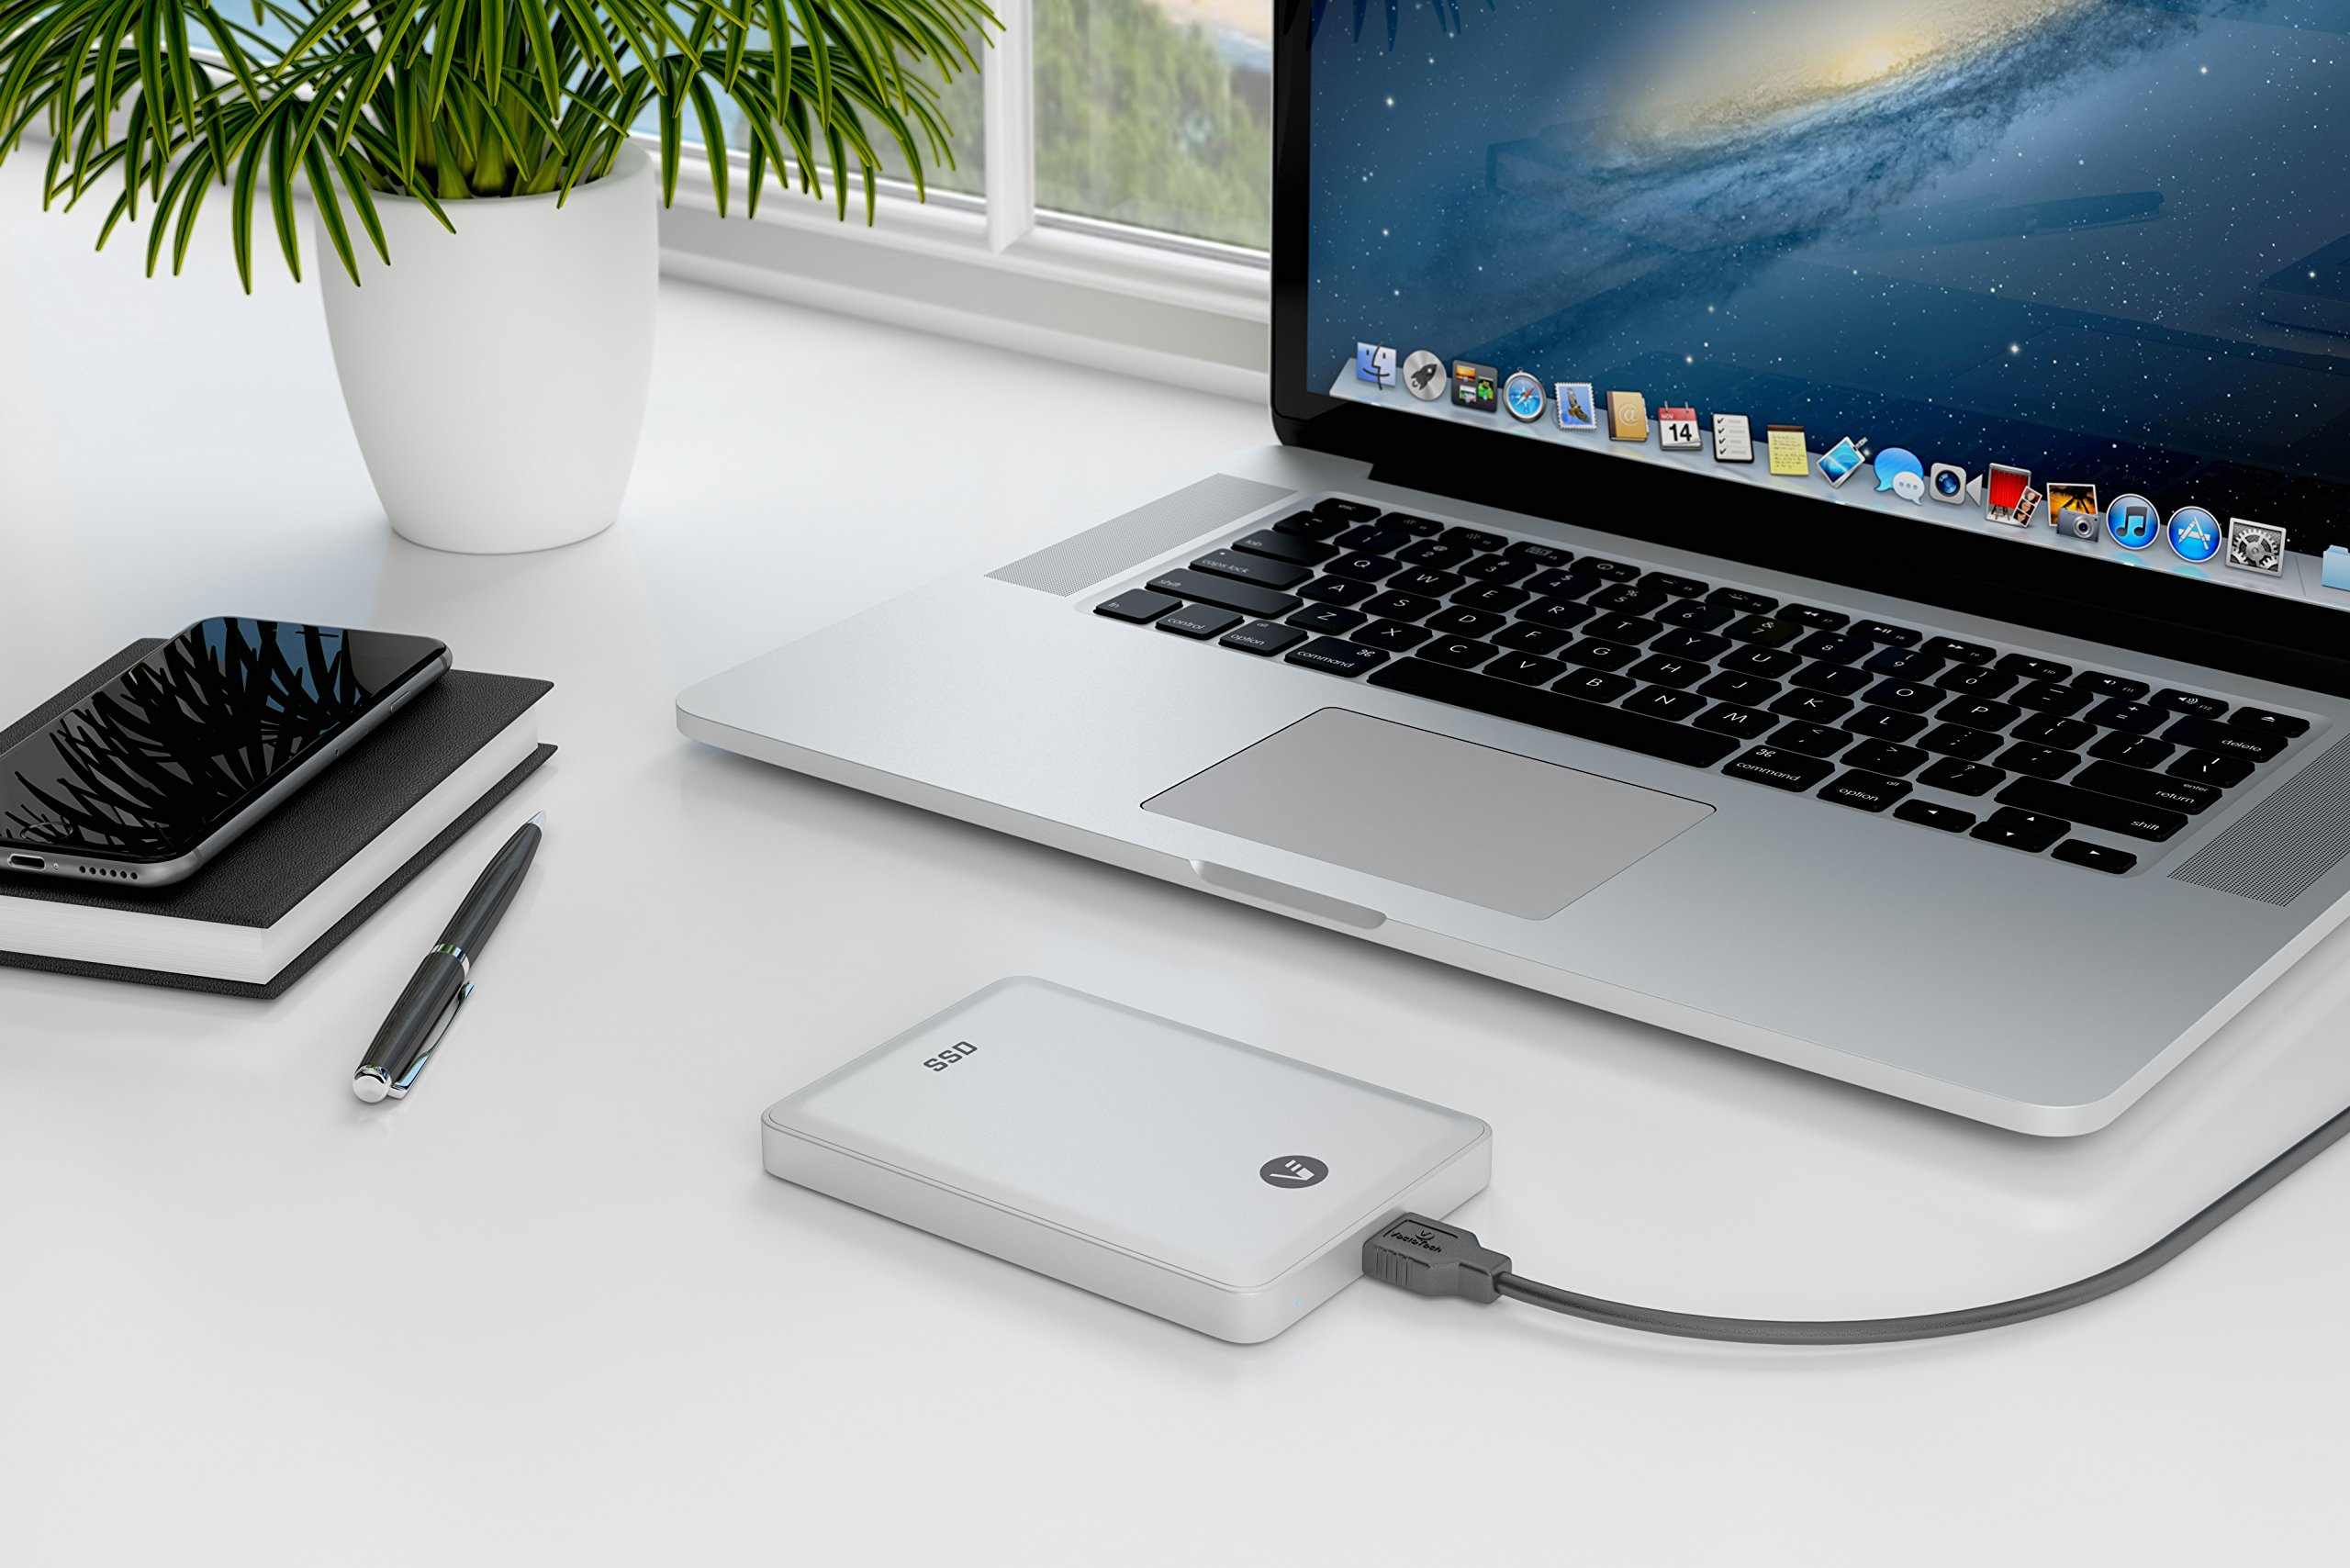 VectoTech Portable 4TB External SSD USB 3.0 Rapid Solid State Drive by VectoTech (Image #4)